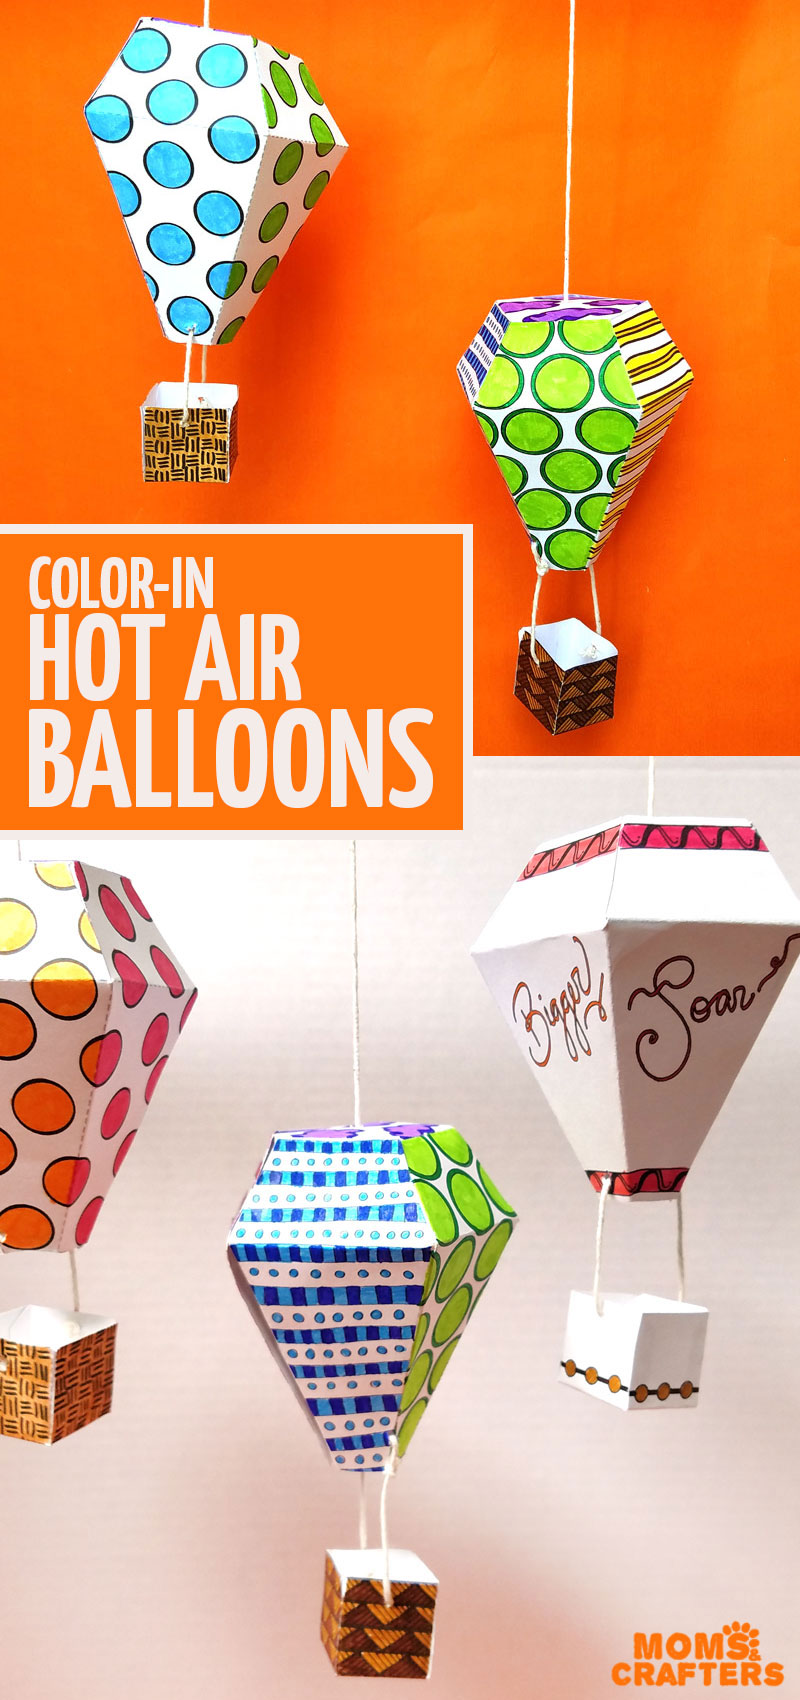 Click to grab these cool color-in hot air balloon mobiles! Includes a FREE PRINTABLE sample coloring page for adults - this is a cool paper craft nursery or playroom decor idea #papercrafts #adultcoloring #diy